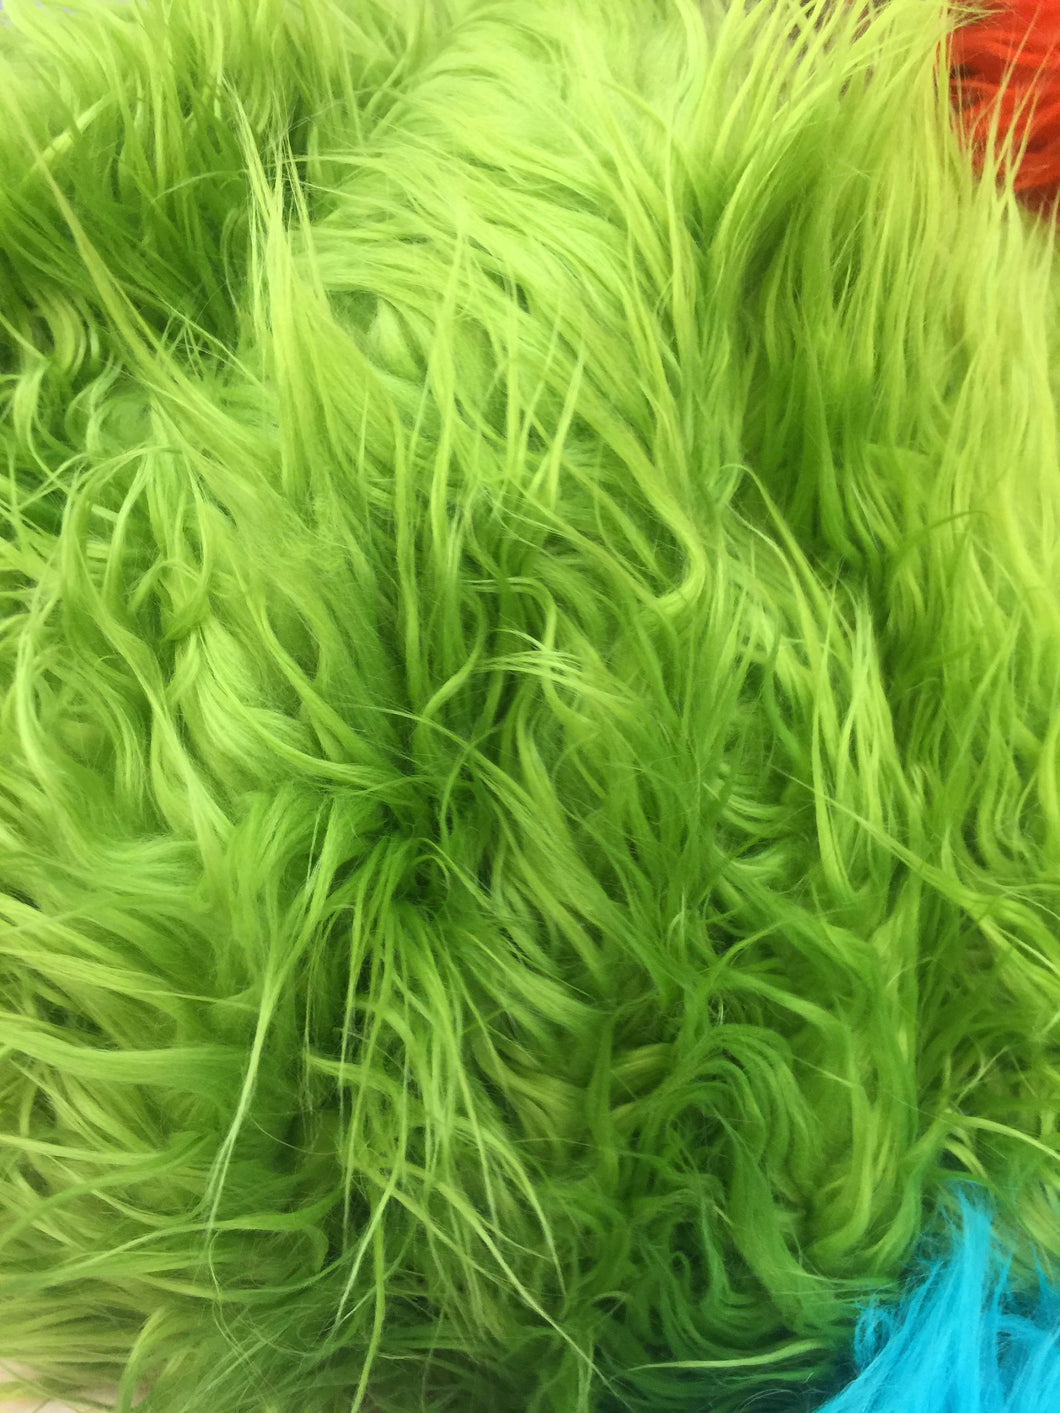 Fur Coats, Fur Clothing, Blankets, Bed Spreads, Throw Blankets Fake Fur Solid Mongolian Long Pile Fabric / Lime Green / Sold By The Yard